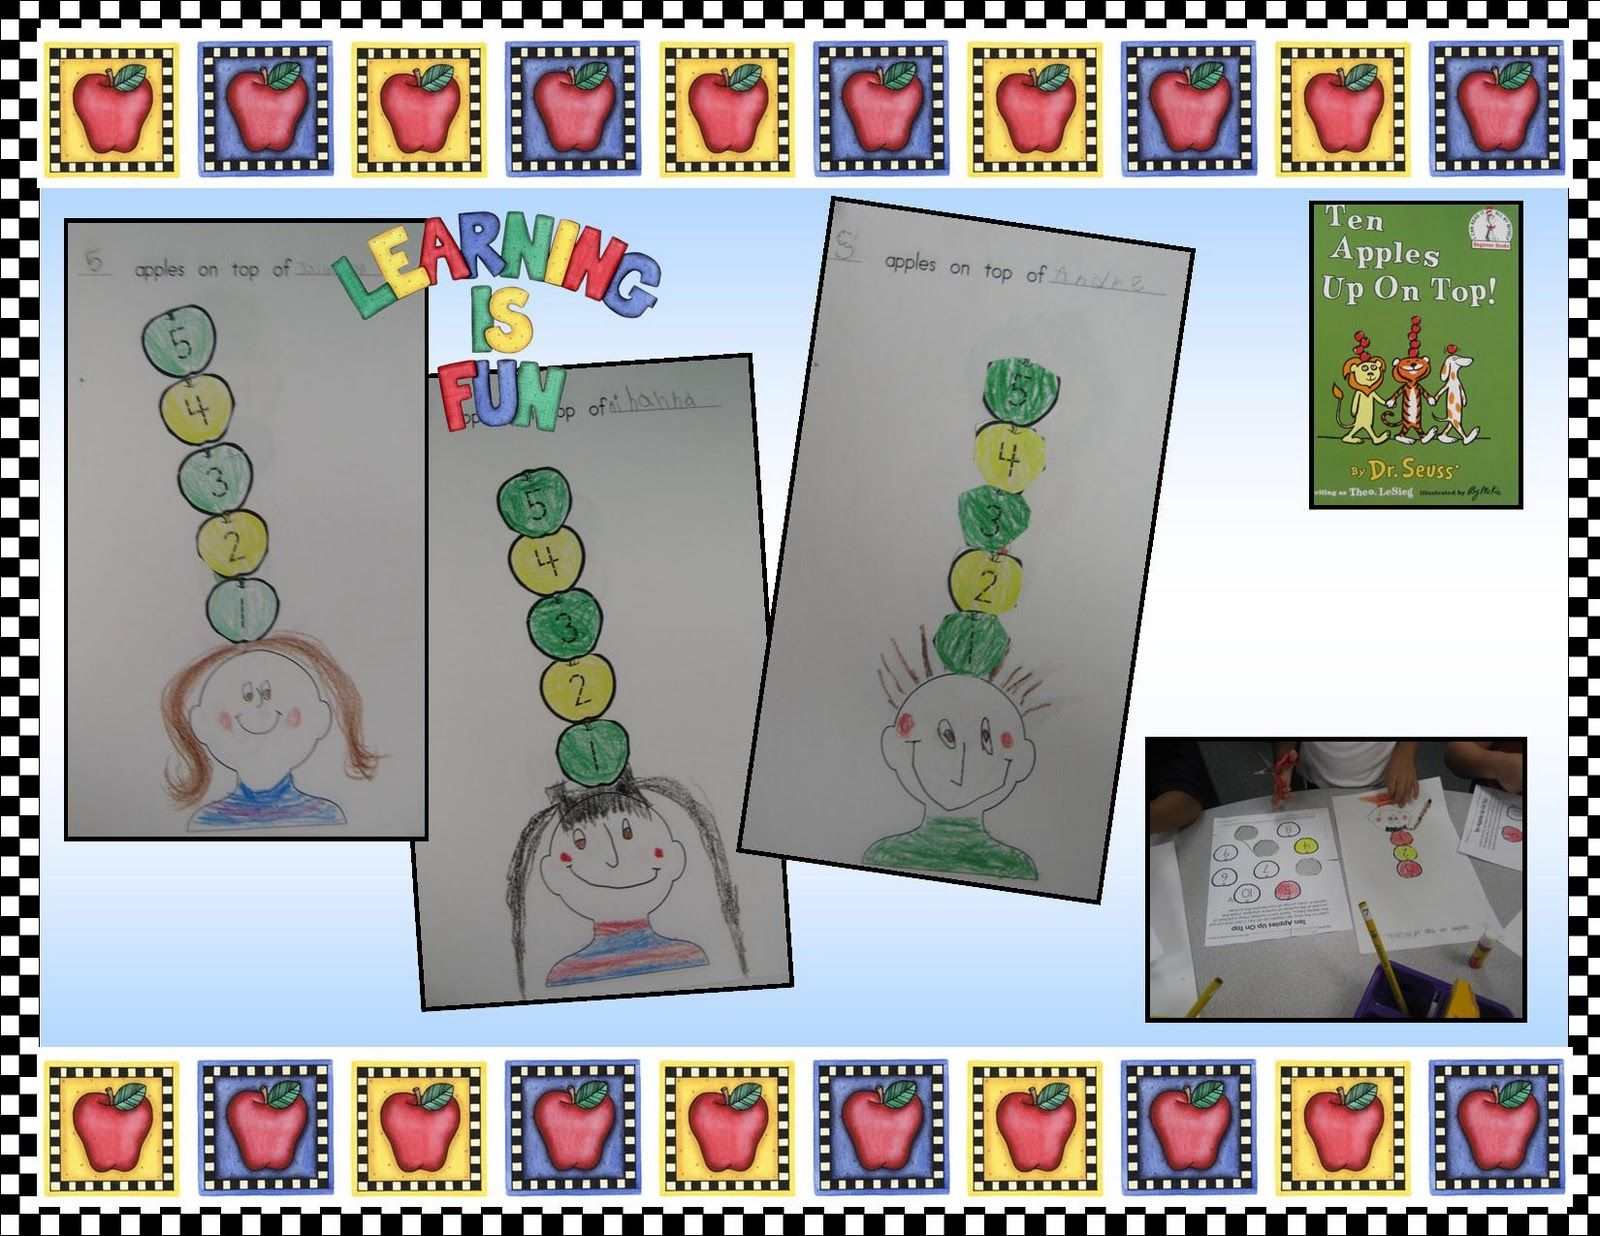 Kindergarten Crayons 10 Apples On Top Ab Pattern Self Portraits Cutting Practice Number